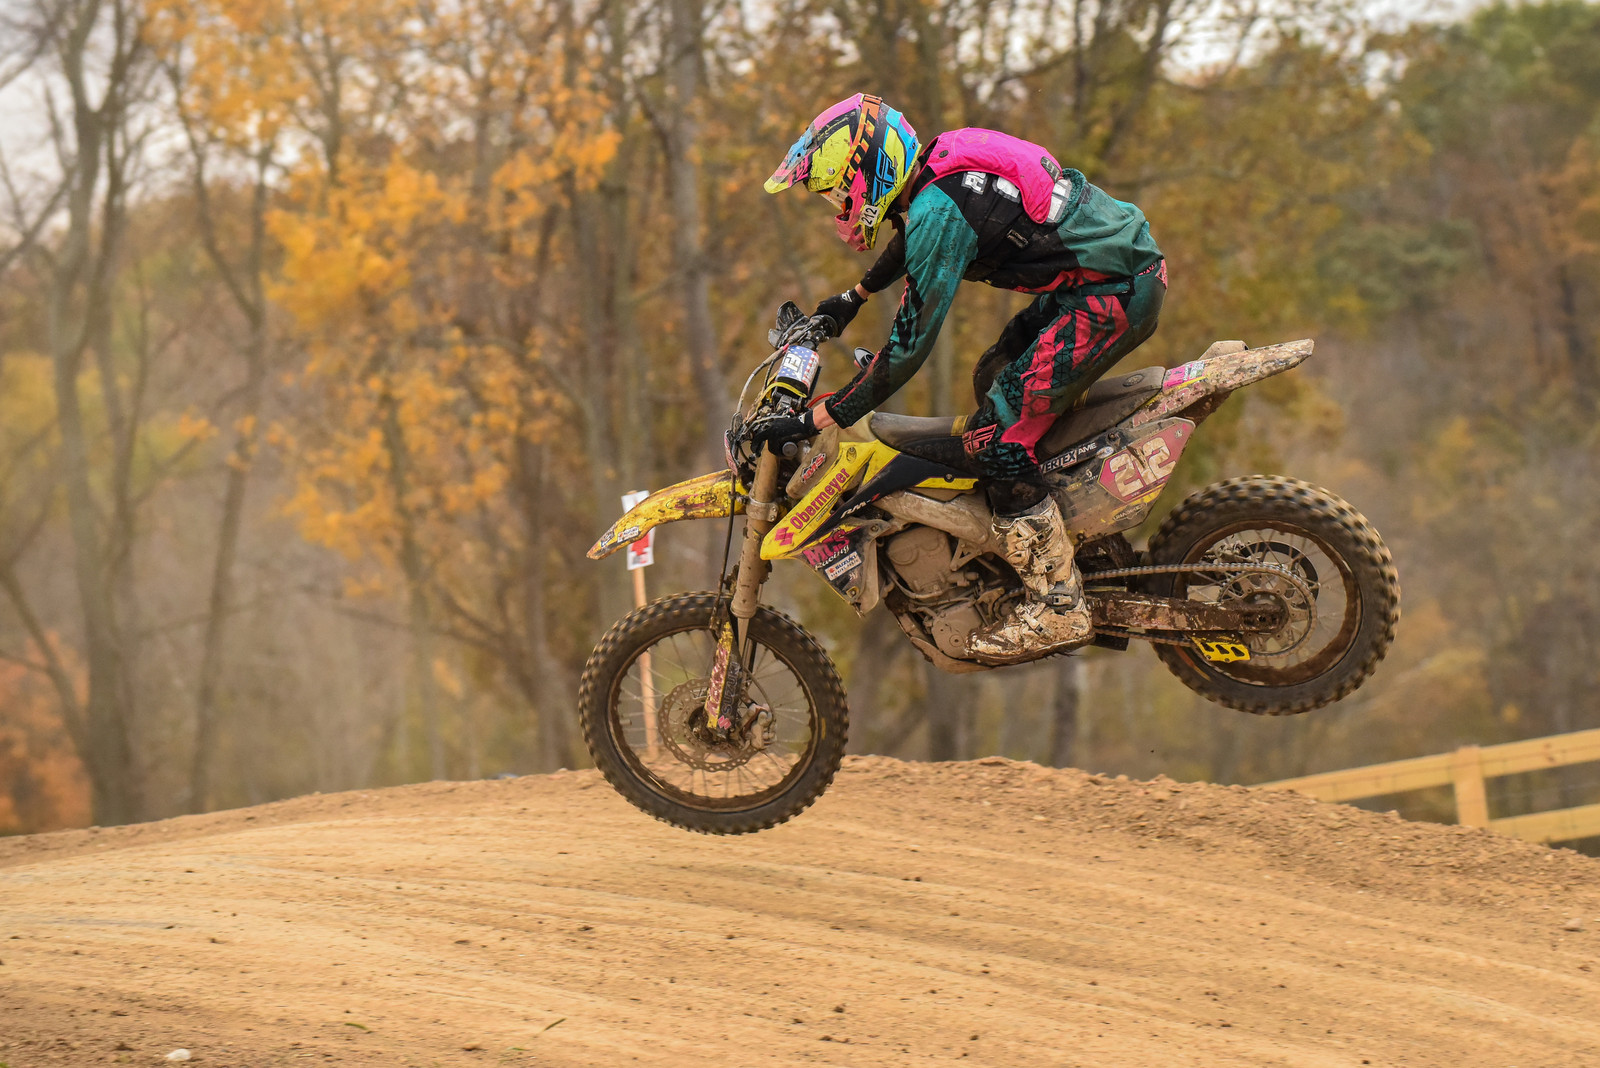 Ricky Russell - Ironman GNCC - Motocross Pictures - Vital MX